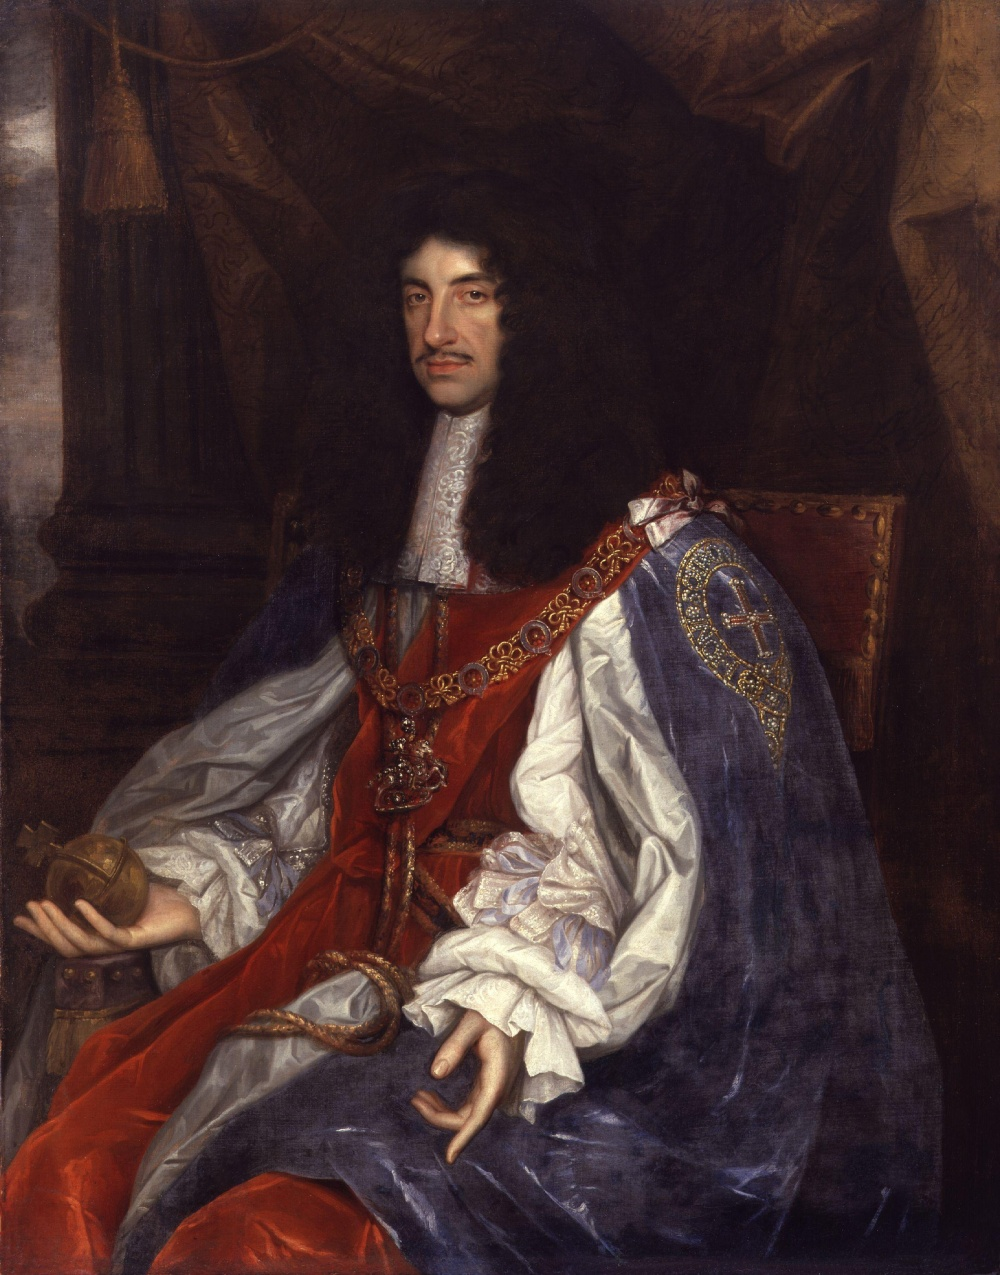 King_Charles_II_by_John_Michael_Wright_or_studio.jpg